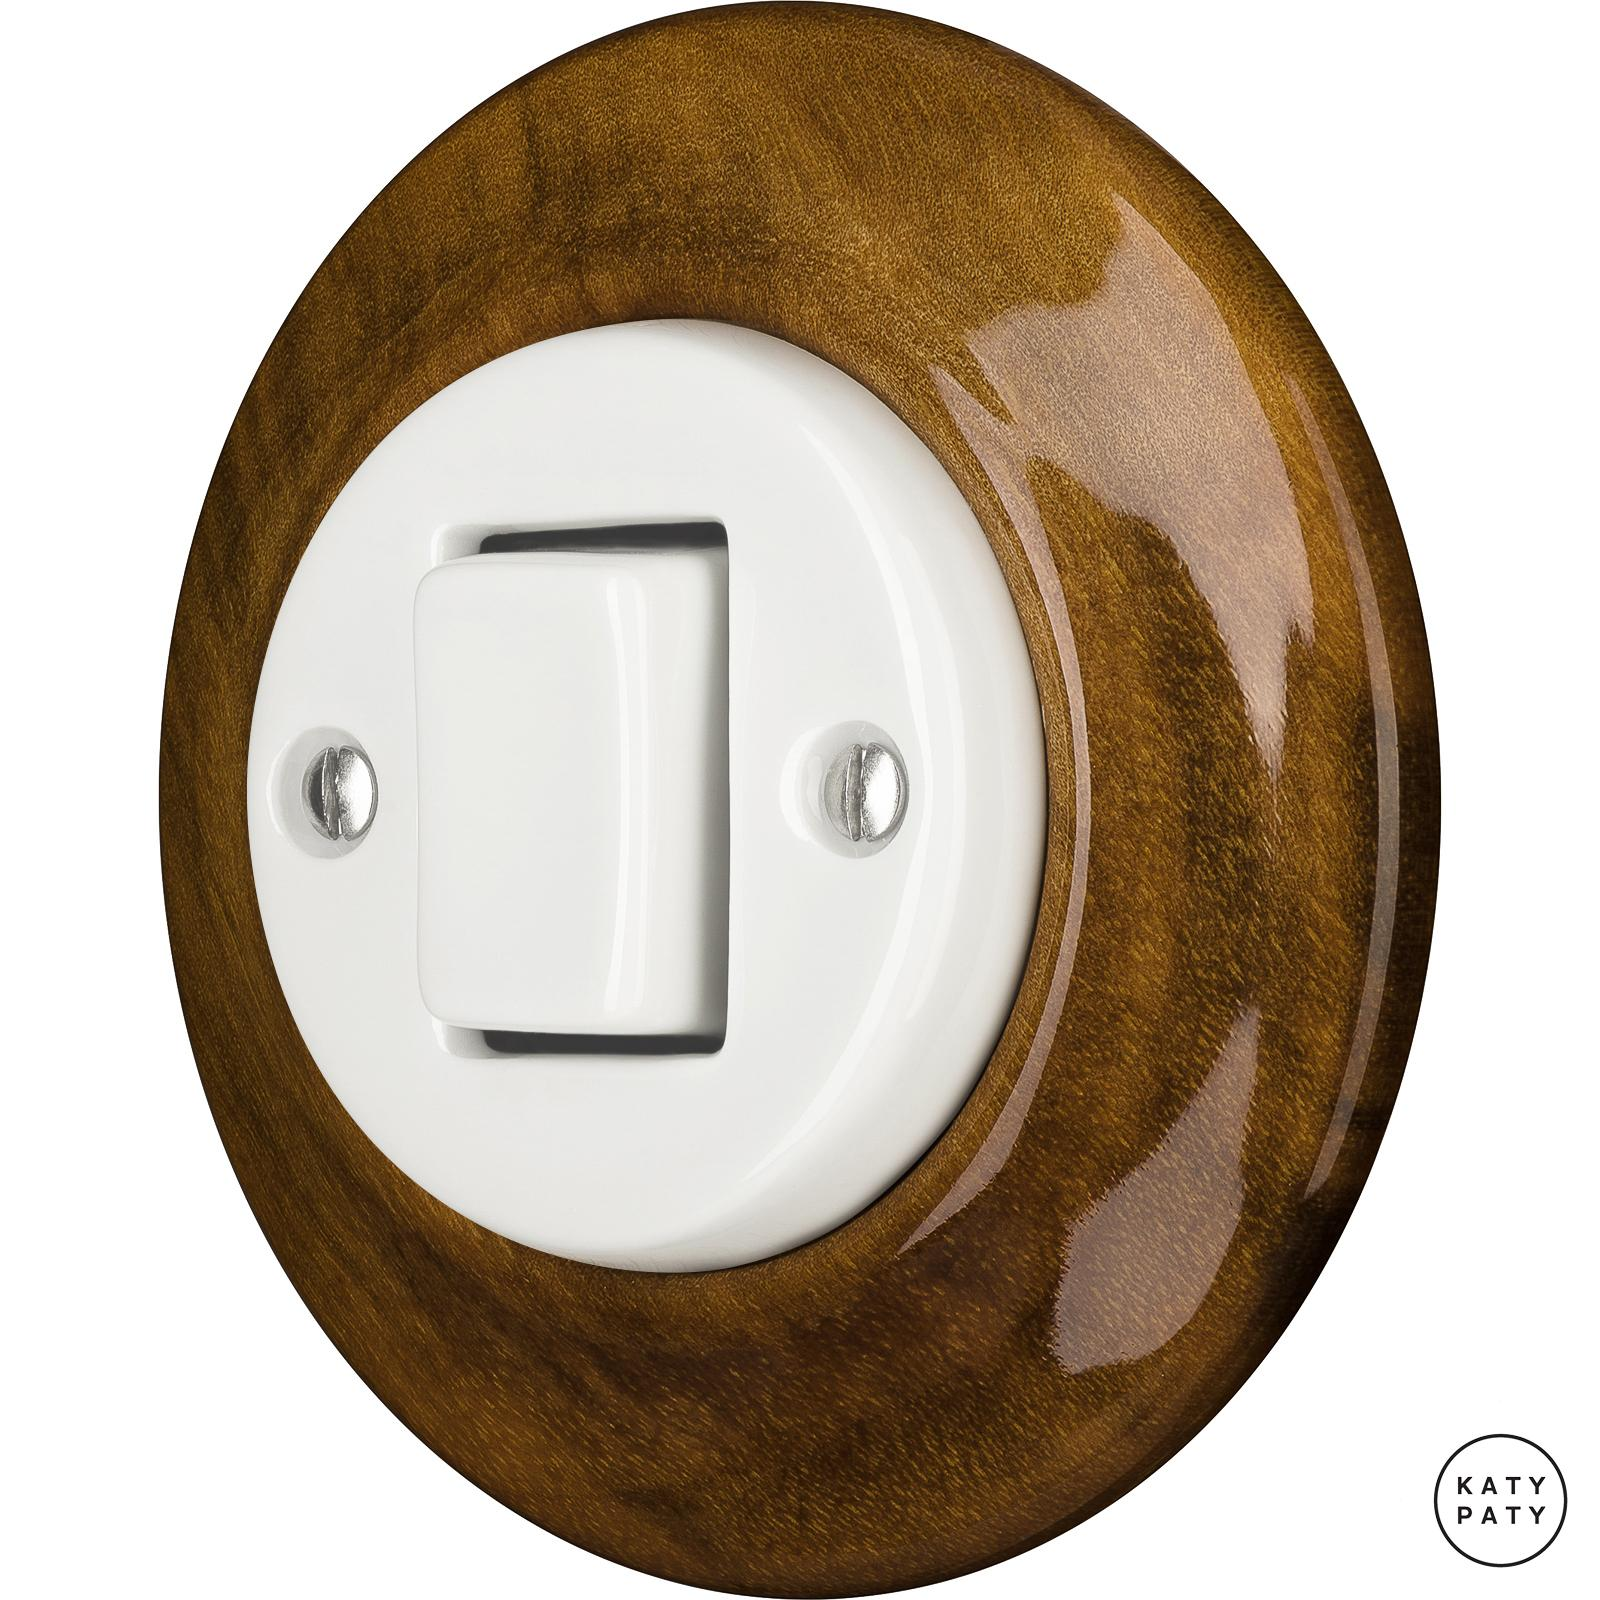 Porcelain switches - a single key - FAT ()  - NUC MAG | Katy Paty